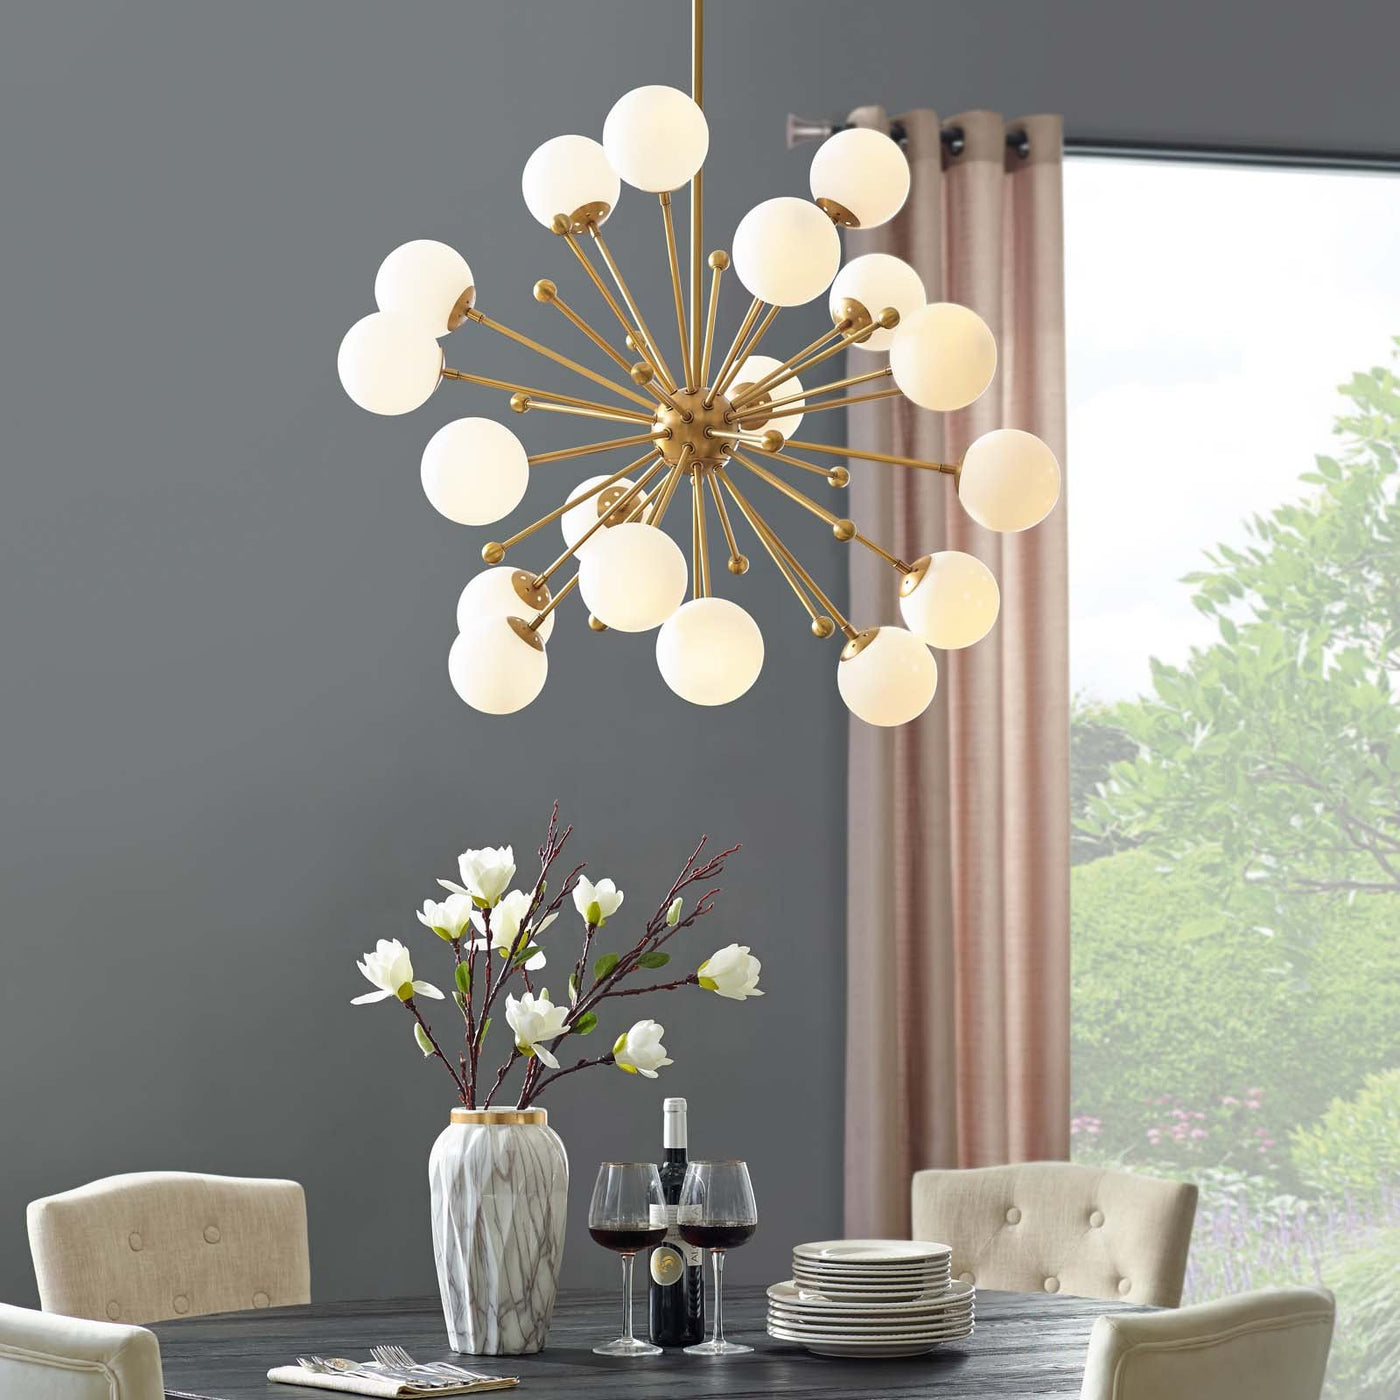 Modern Lighting, Table Lamps & Chandeliers | Wantism